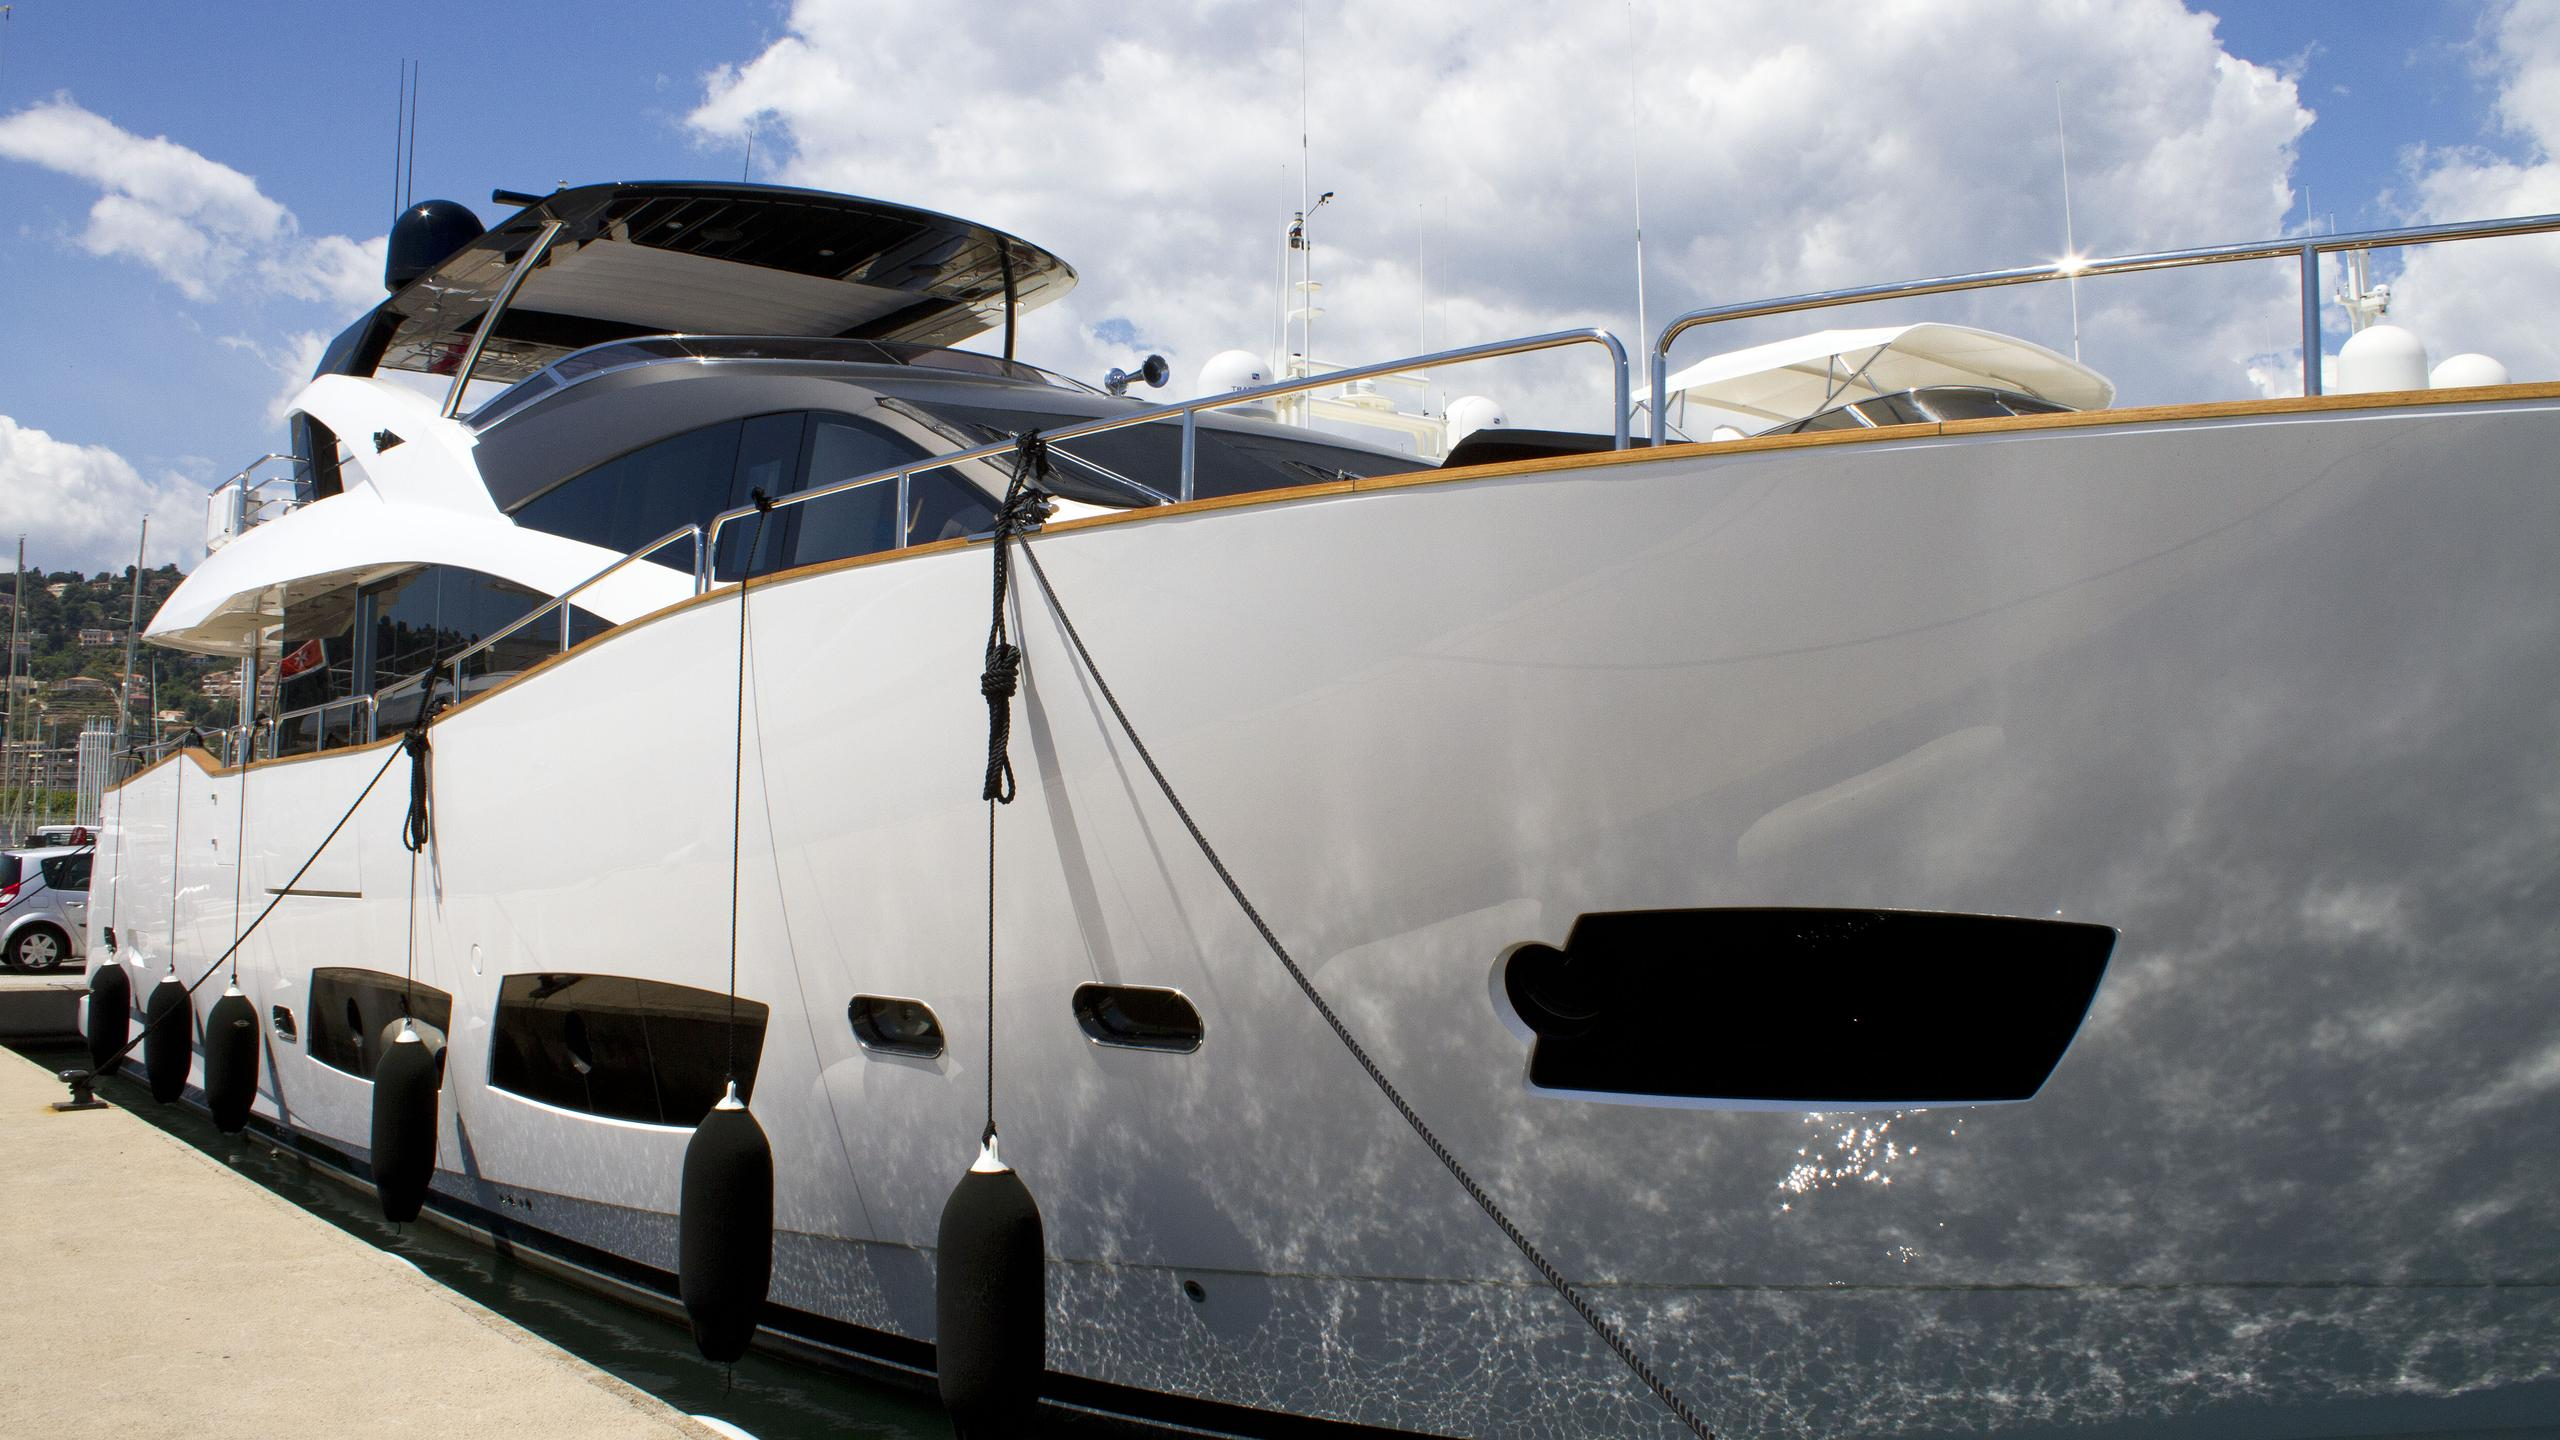 mystery-king-motor-yacht-sunseeker-2015-28m-moored-bow